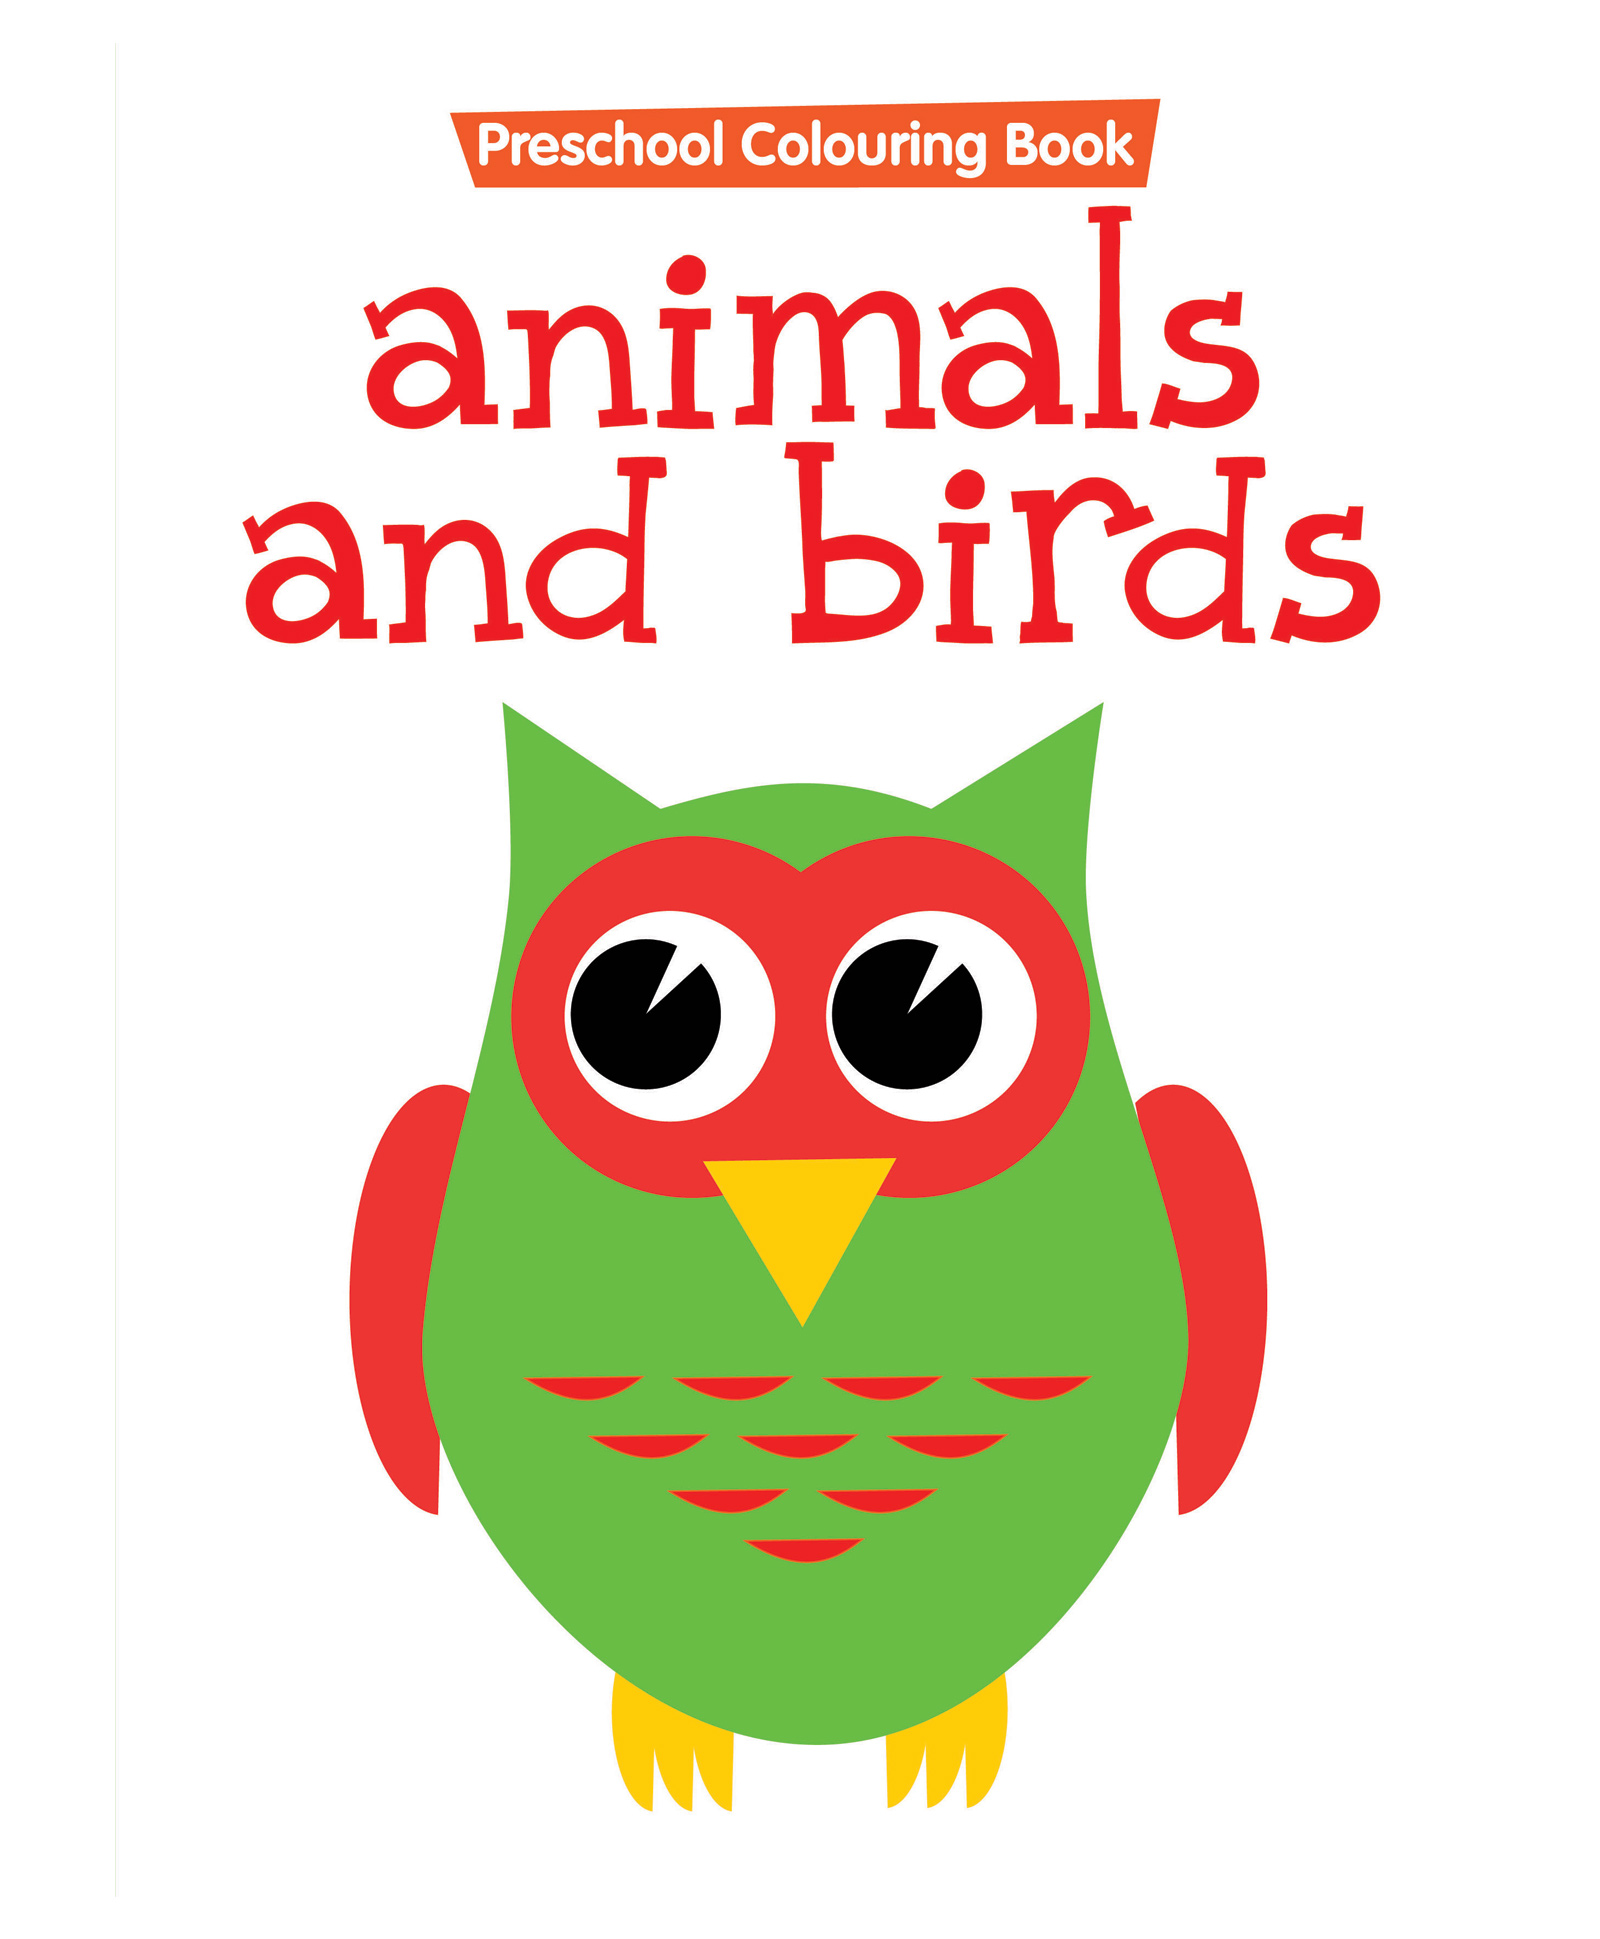 Preschool Coloring Book Animals And Birds English Online in India ...